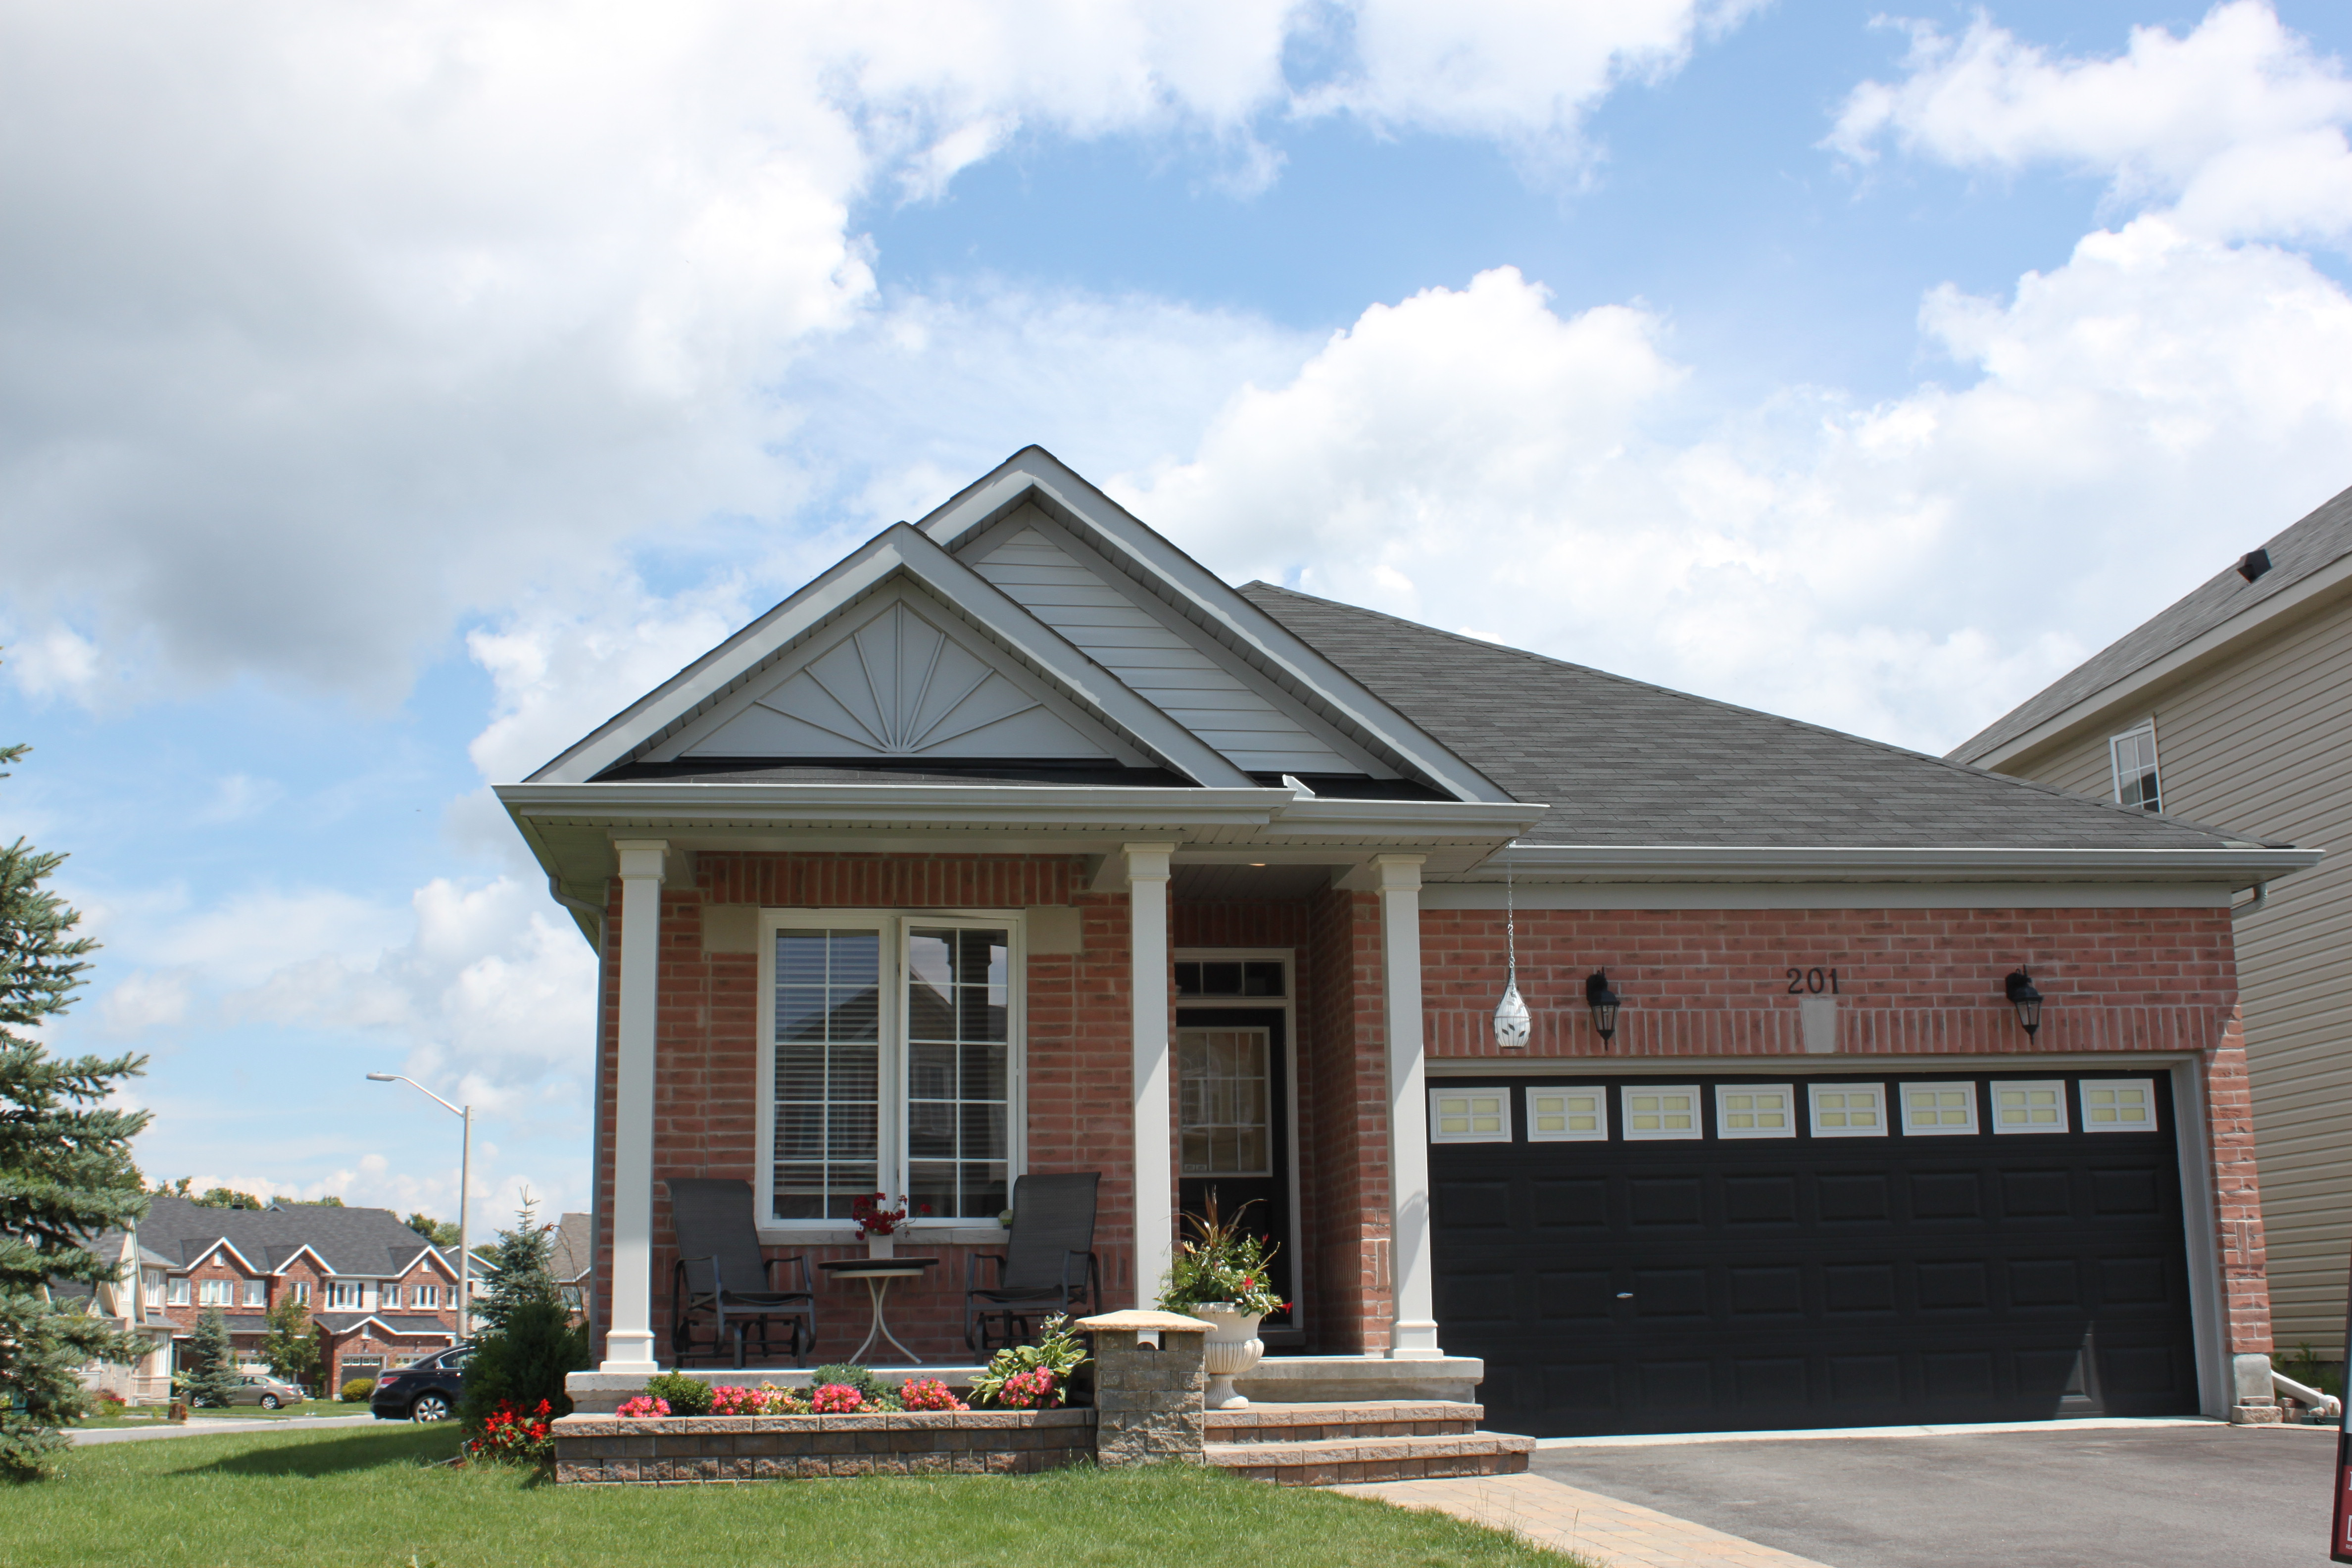 A Stunning all brick bungalow on a large corner lot in a beautiful neighborhood.  Spacious 2 car garage and oversized driveway.  Can fit your toys and your vehicles.